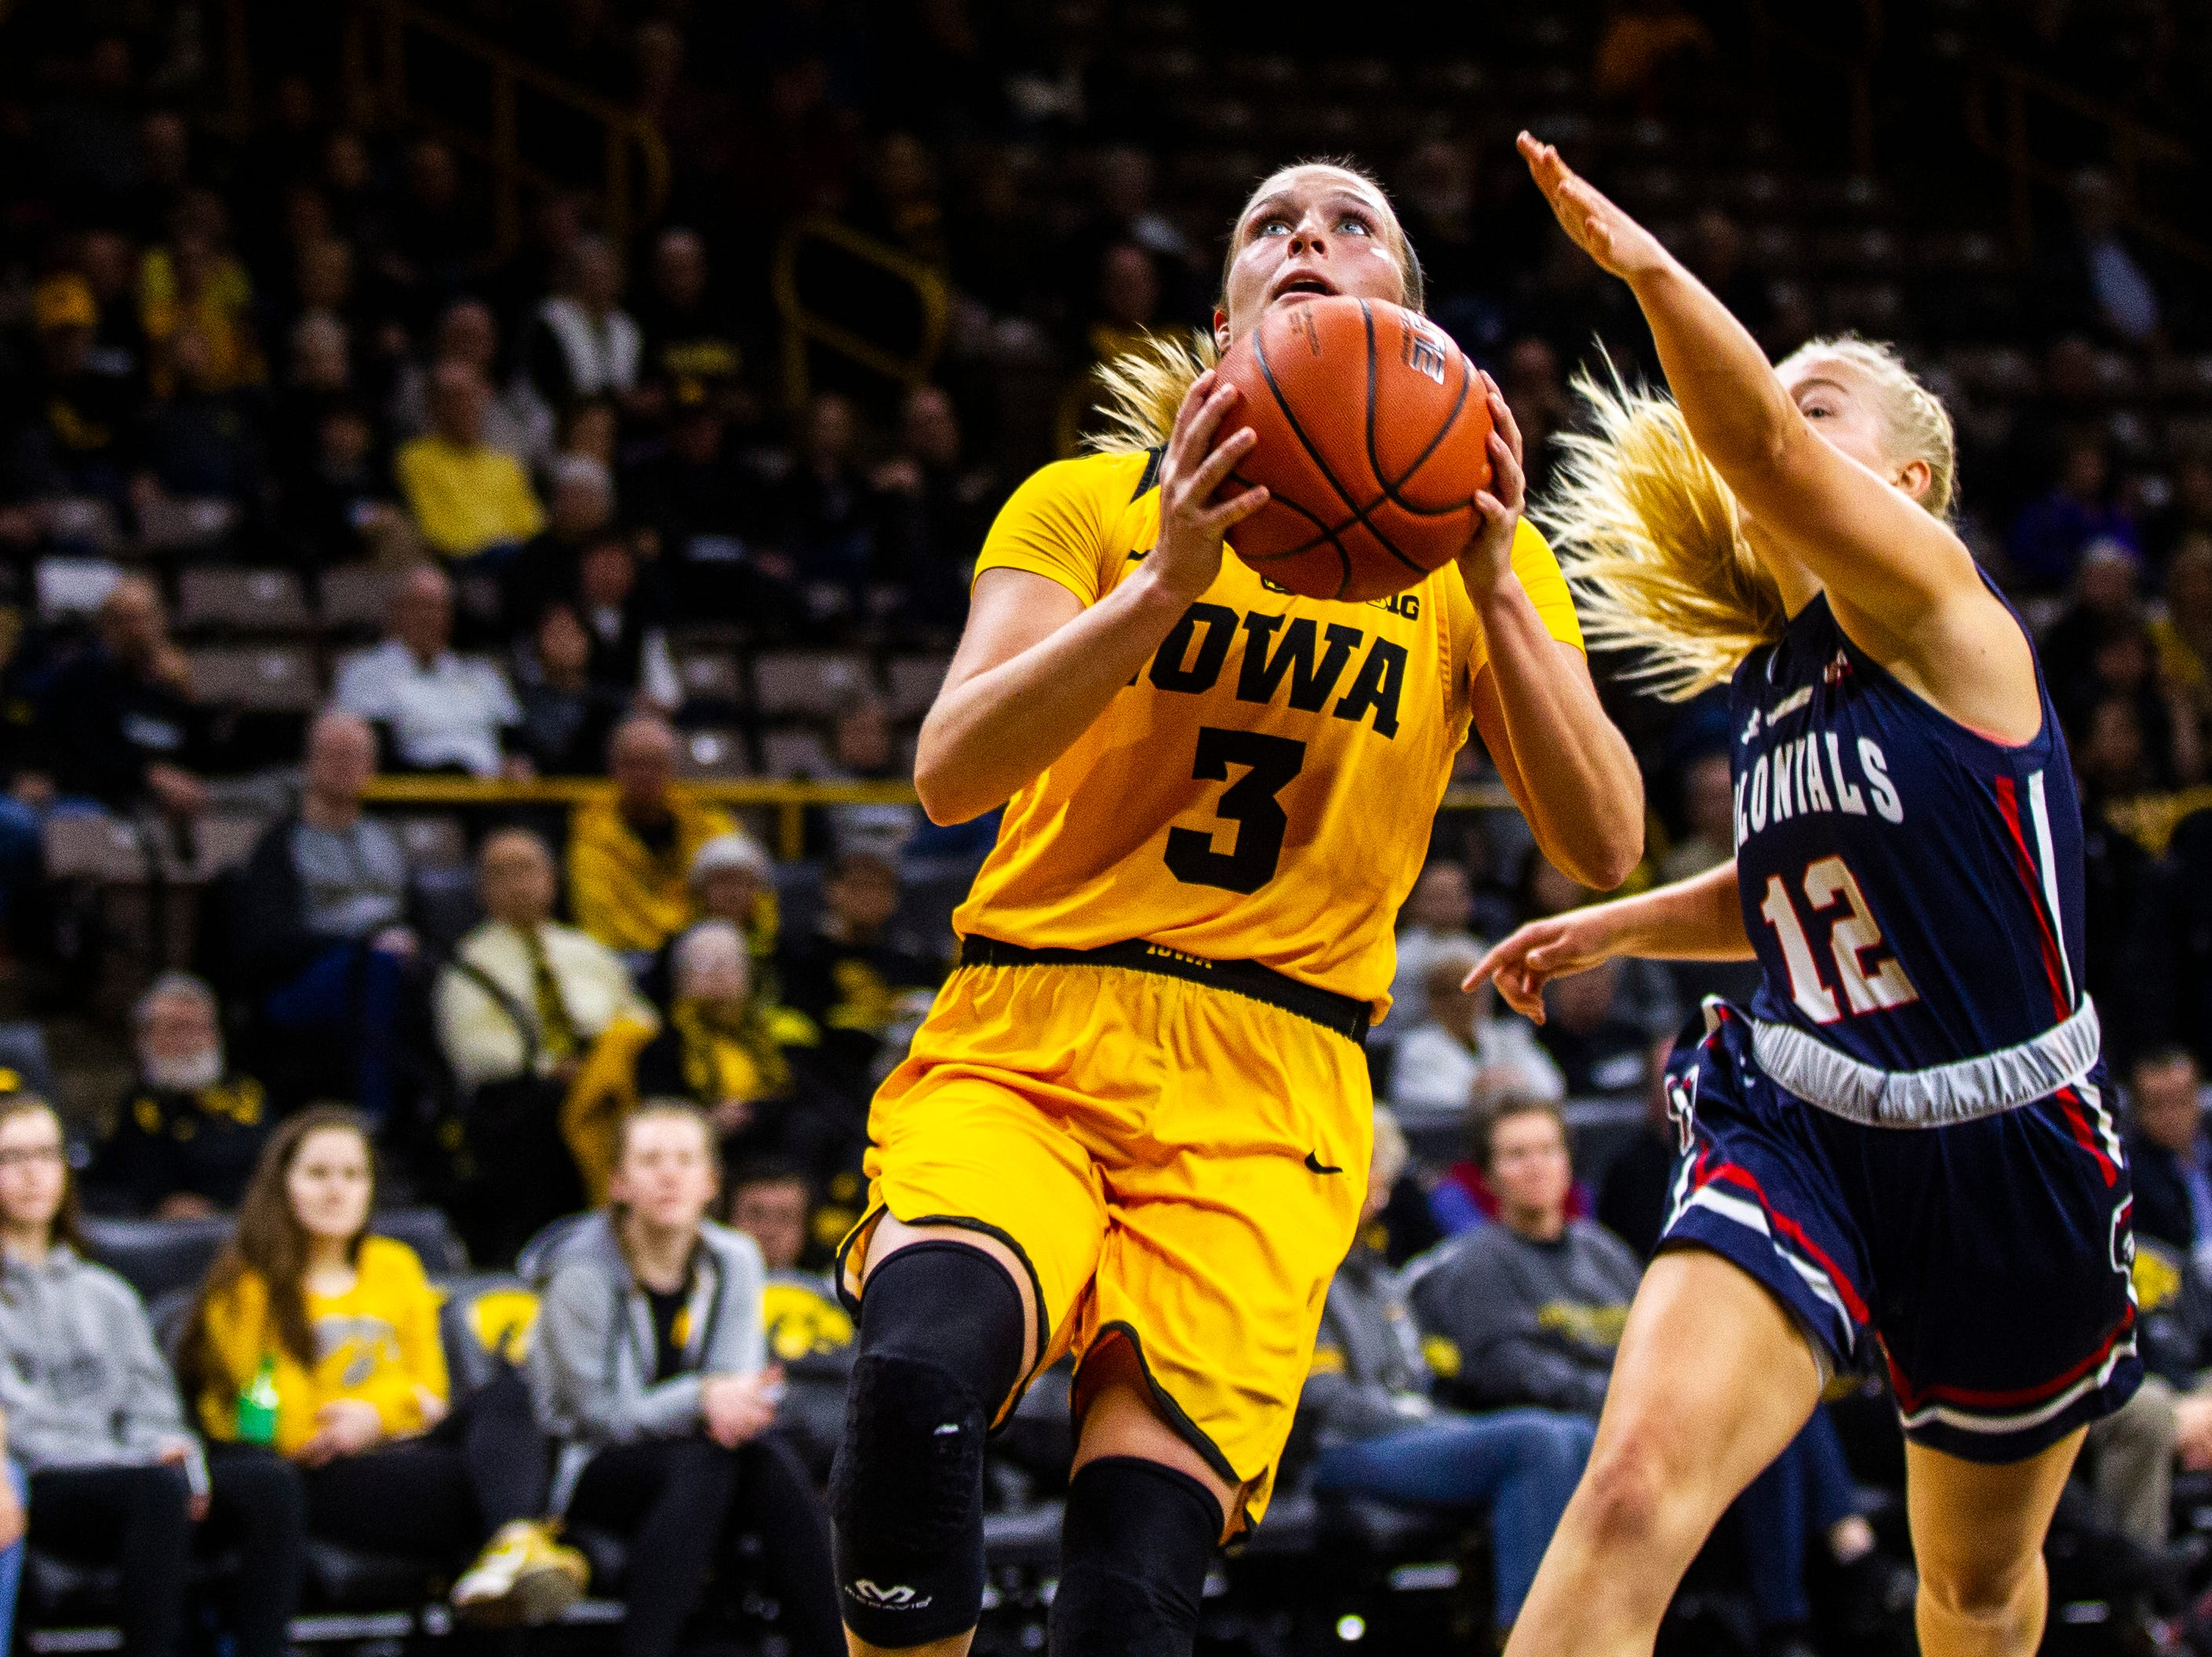 Iowa guard Makenzie Meyer (3) drives to the hoop during a NCAA women's basketball game on Sunday, Dec. 2, 2018, at Carver-Hawkeye Arena in Iowa City.